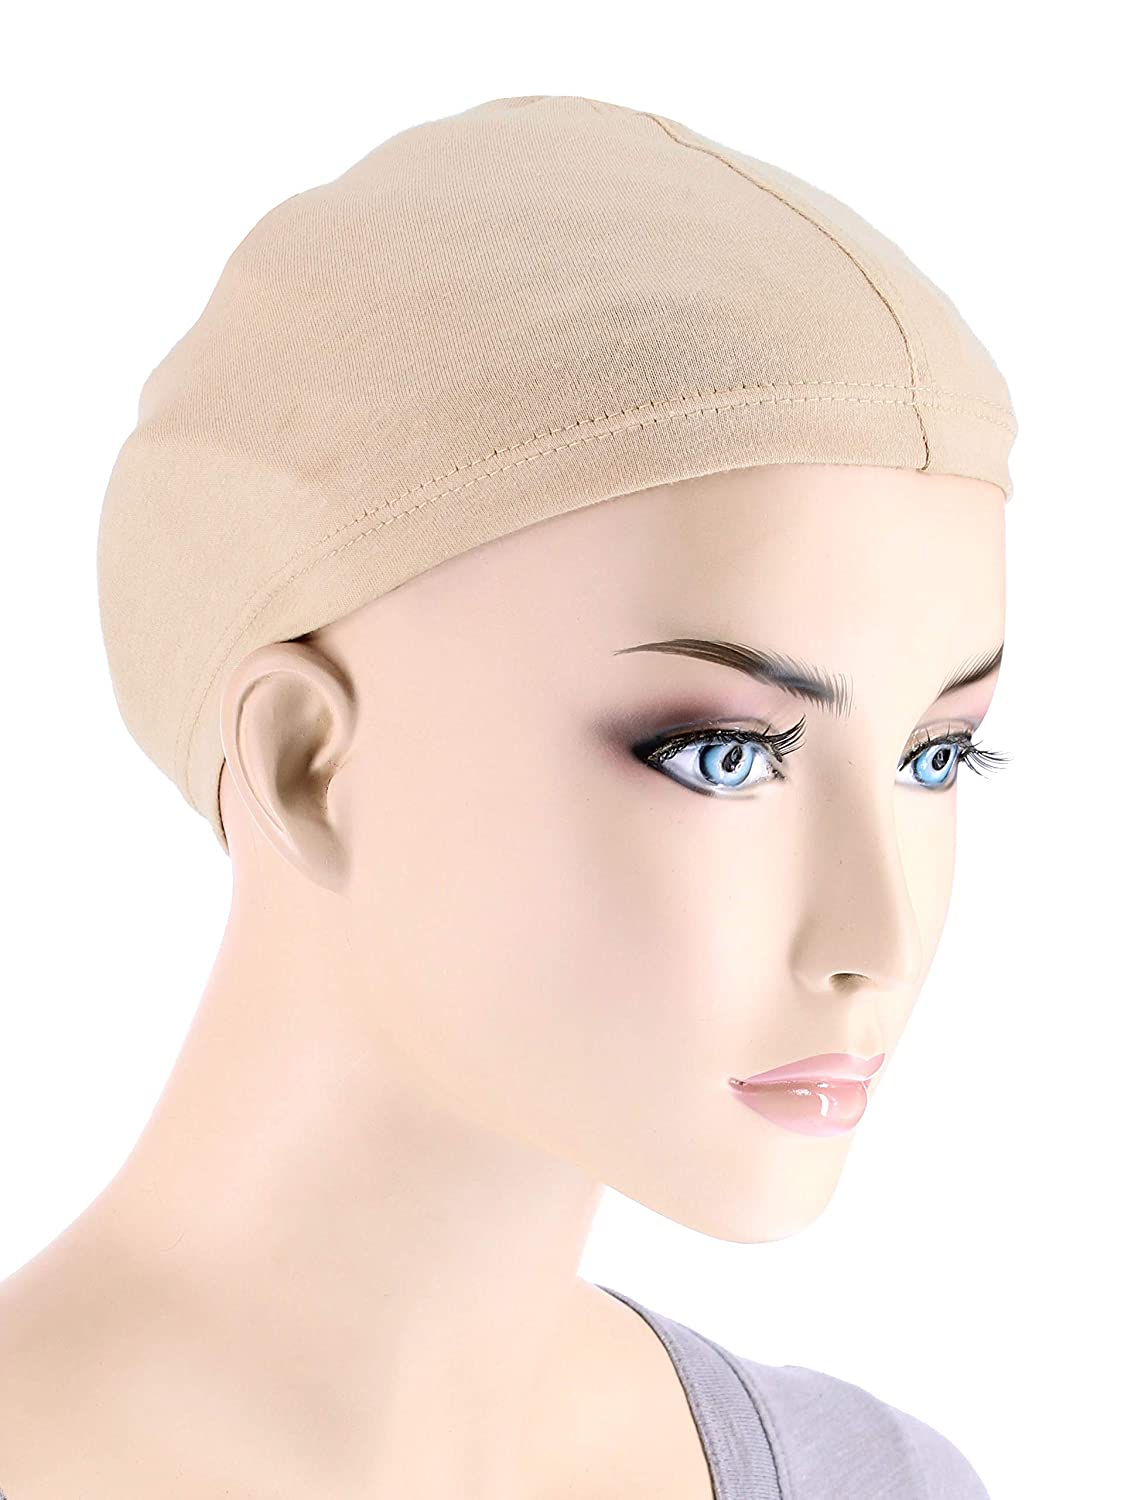 Bamboo Wig Liner Cap in Beige 2 pc pack for Women with Cancer, Chemo, Hair Loss WLBBNATURAL